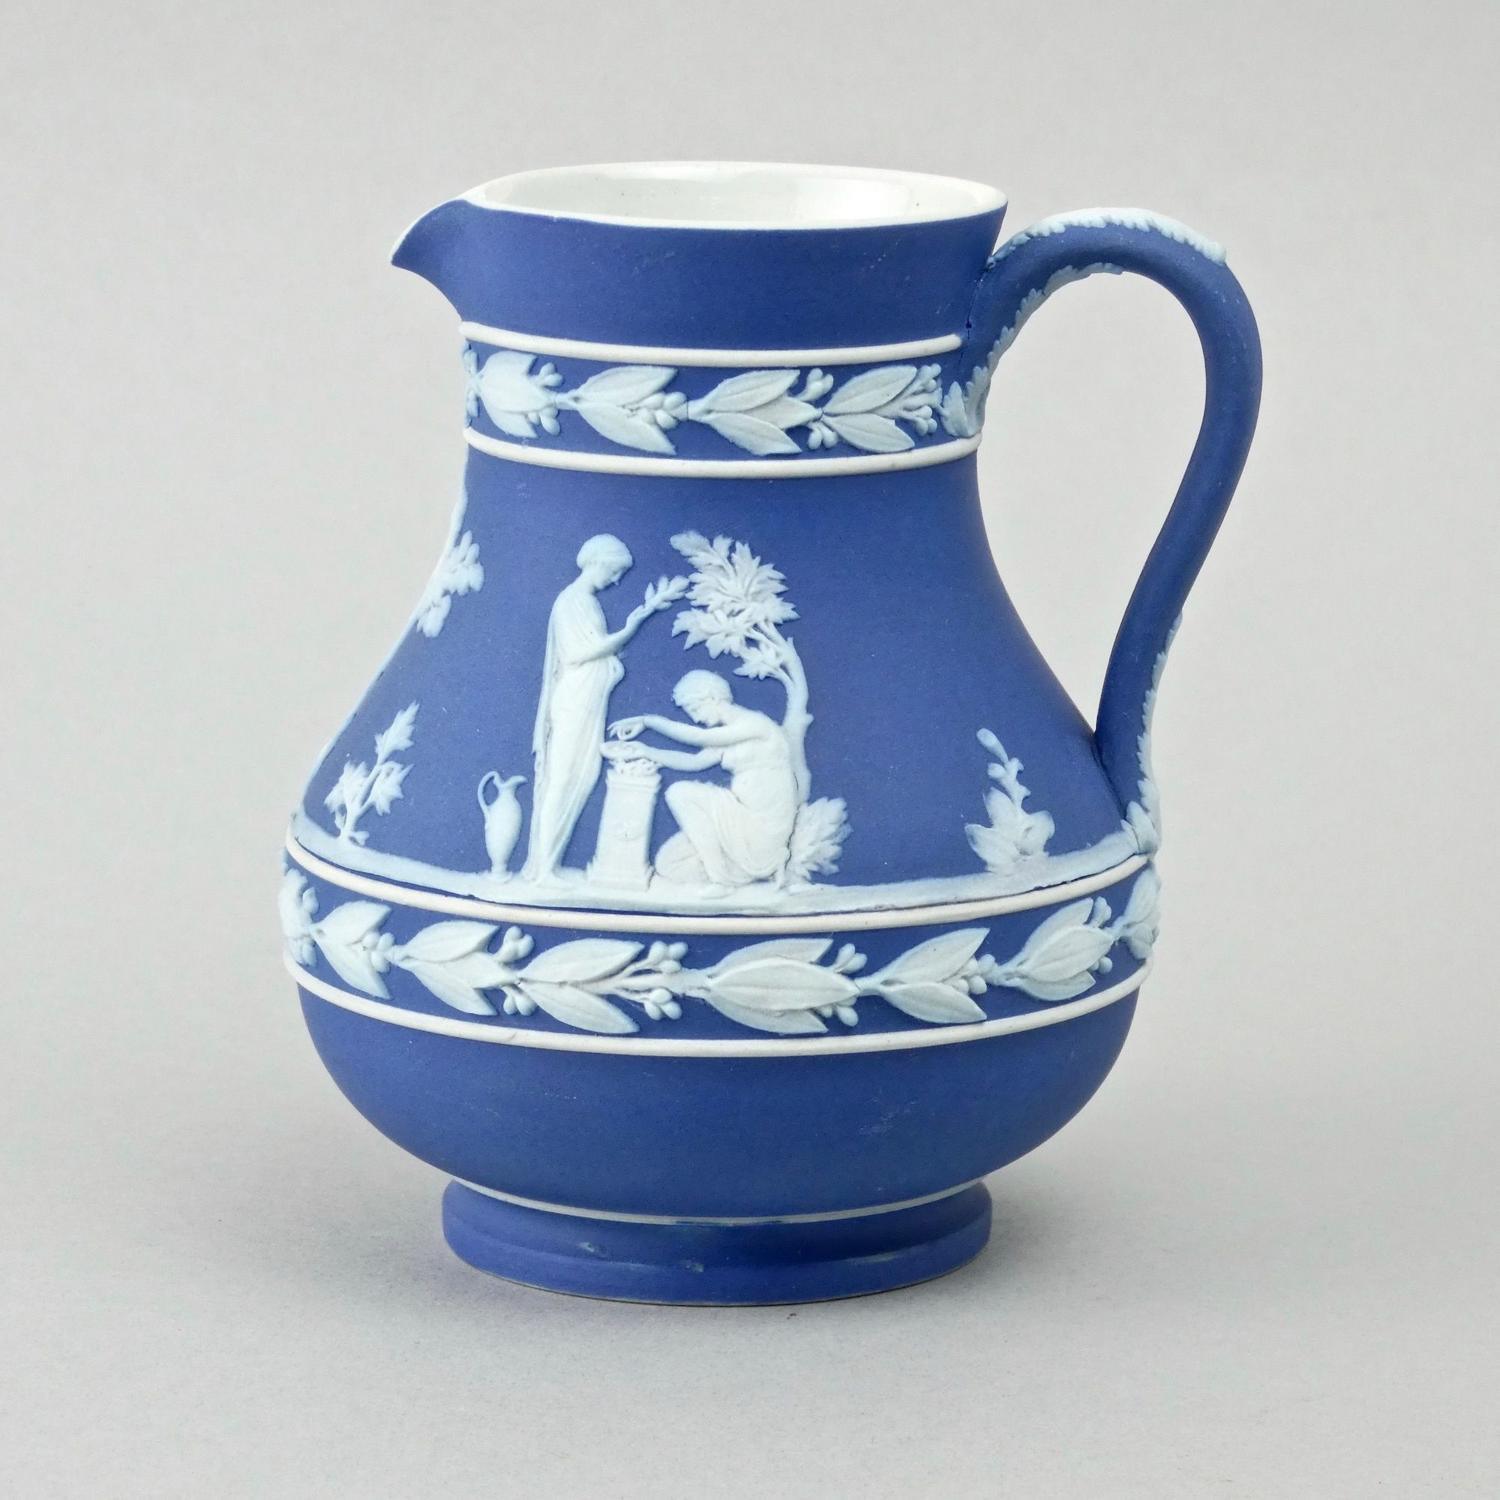 Wedgwood 'Etruscan' shaped jug